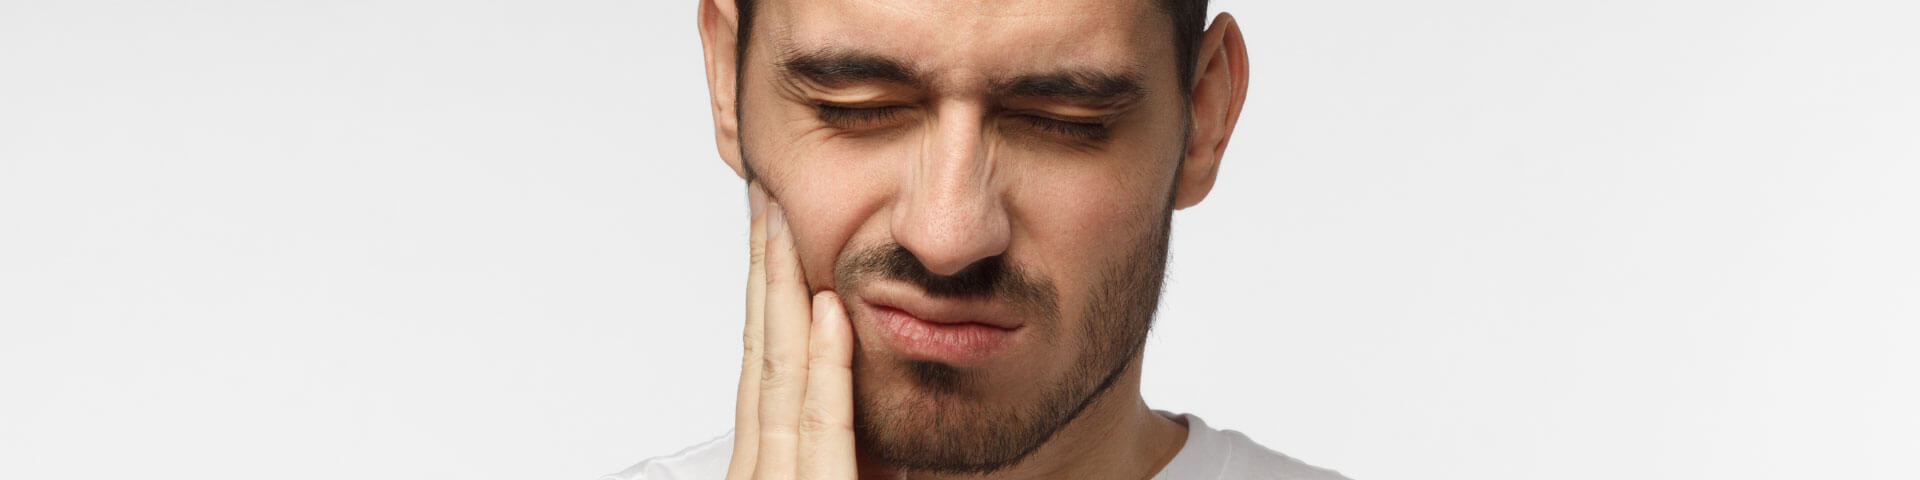 Root Canal Therapy at Affordable Cost